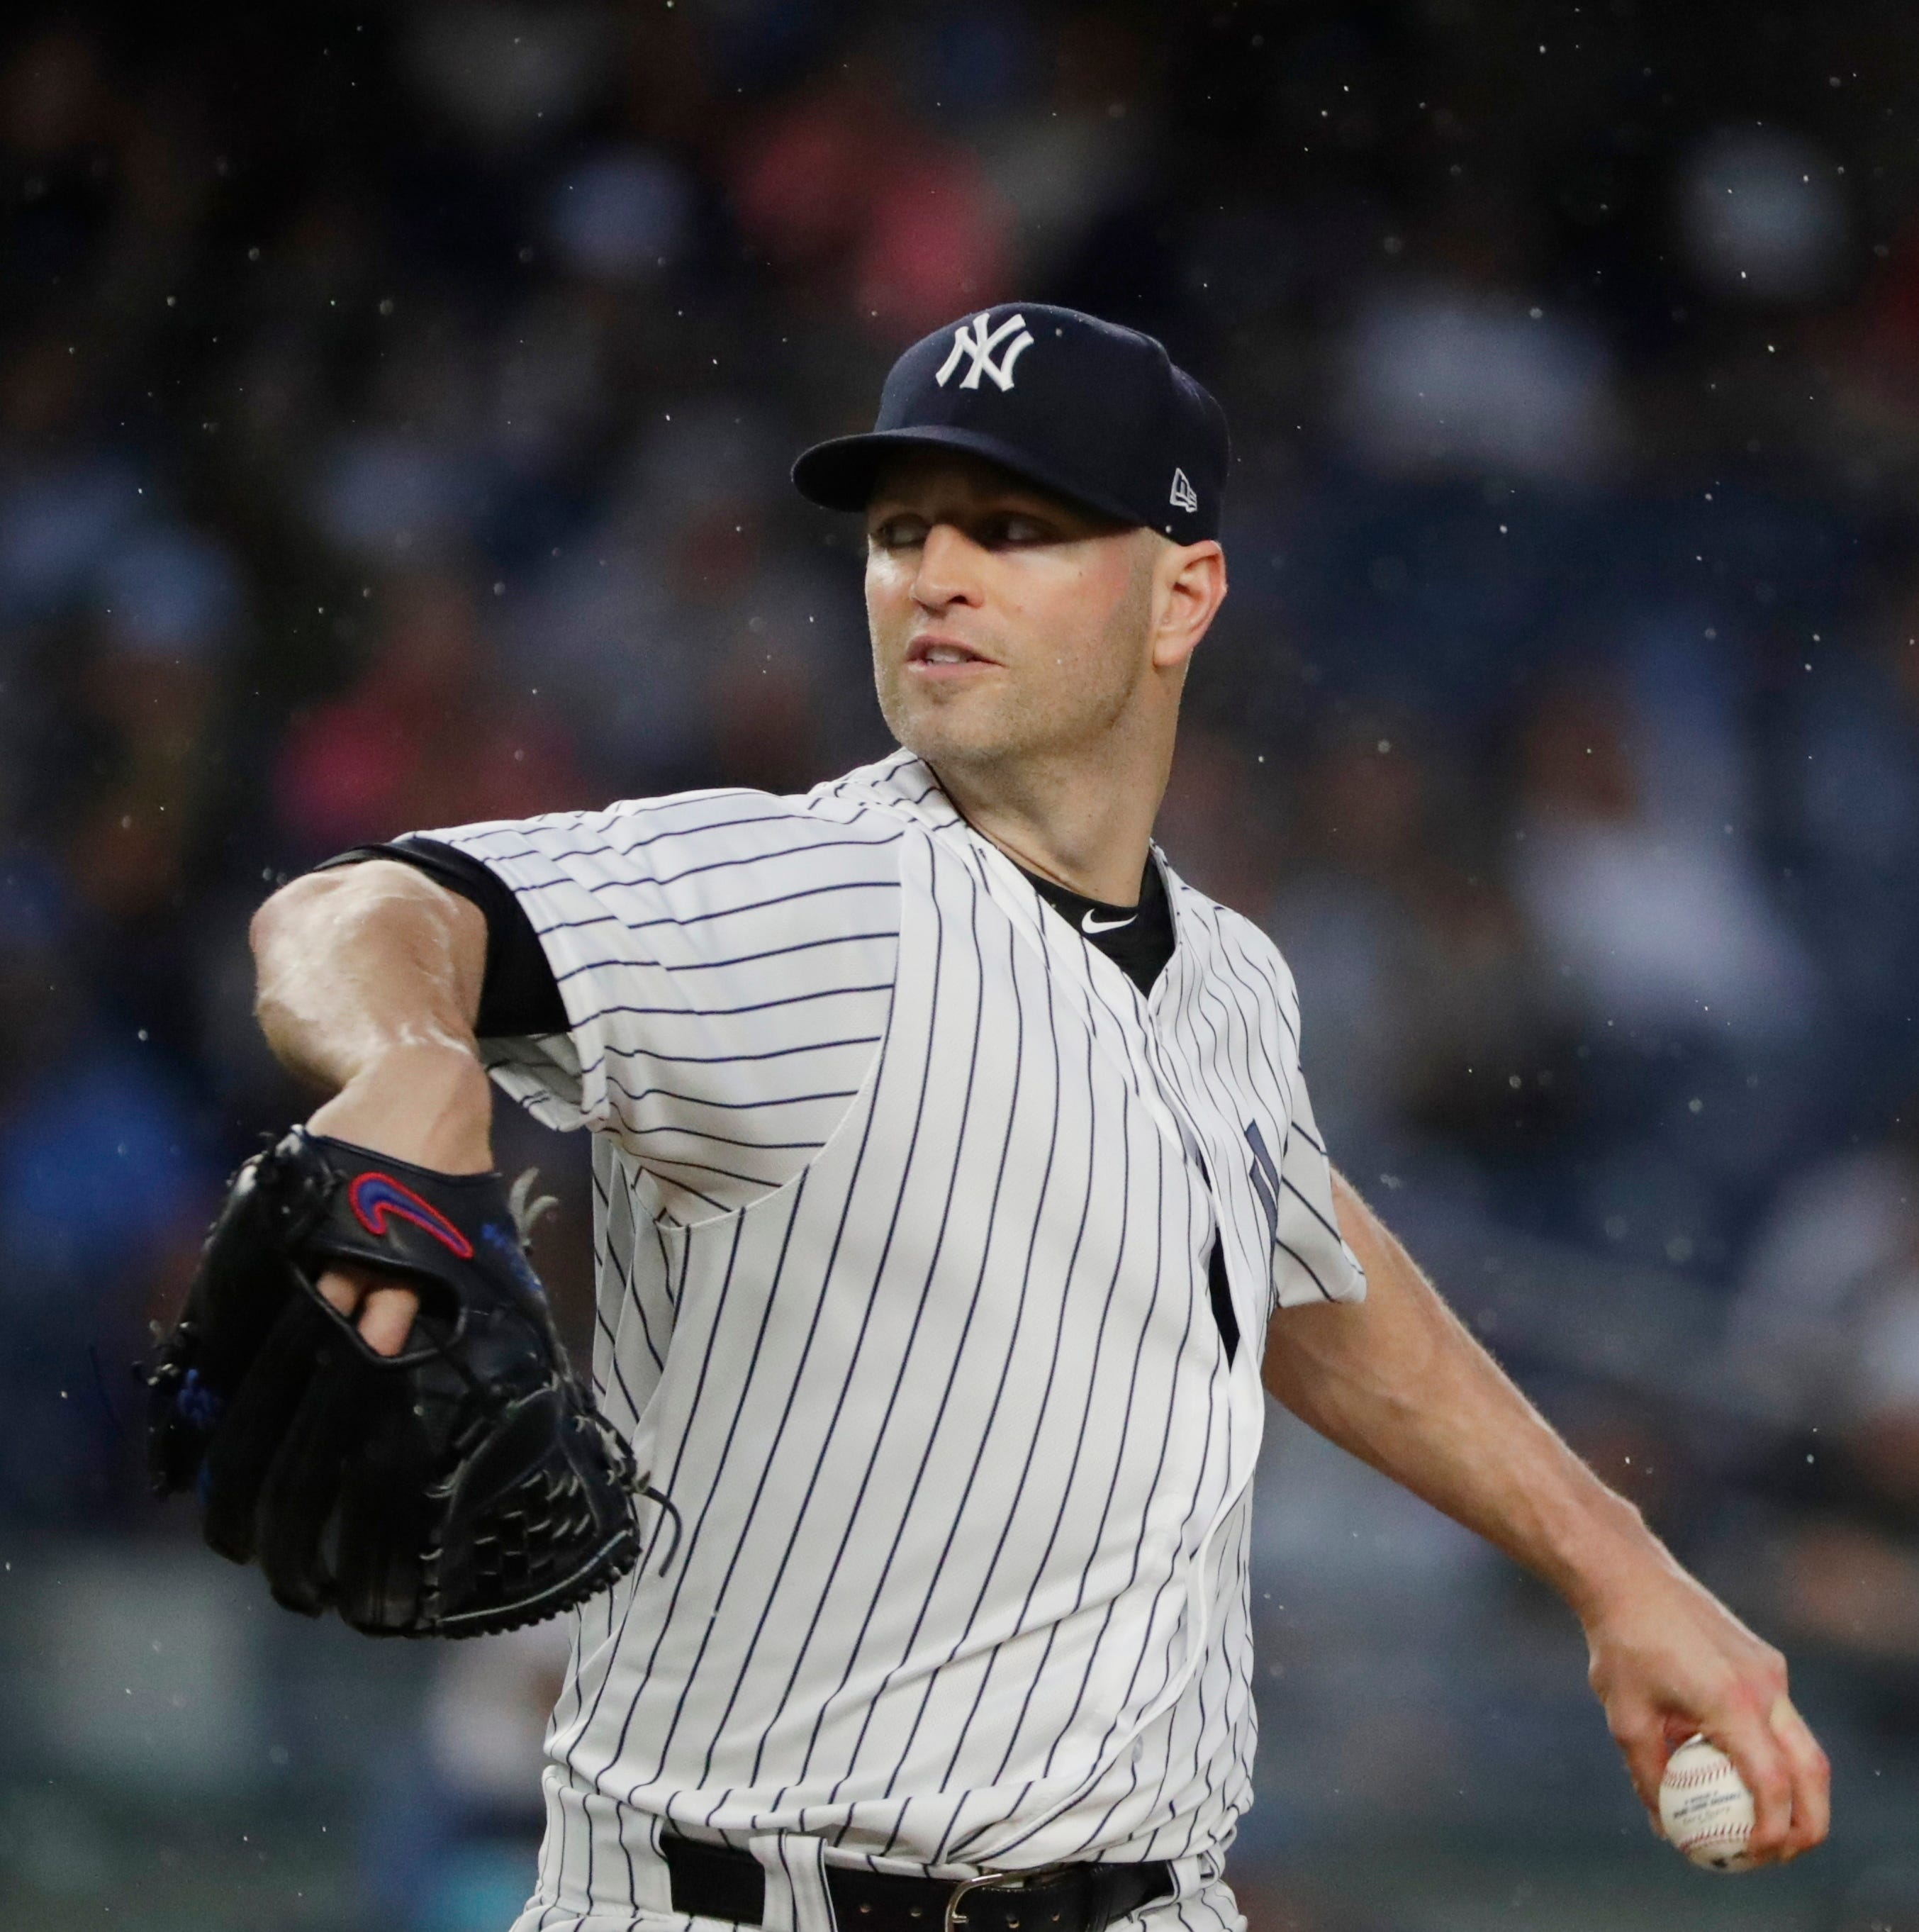 New York Yankees announce Sunday lineup against Blue Jays